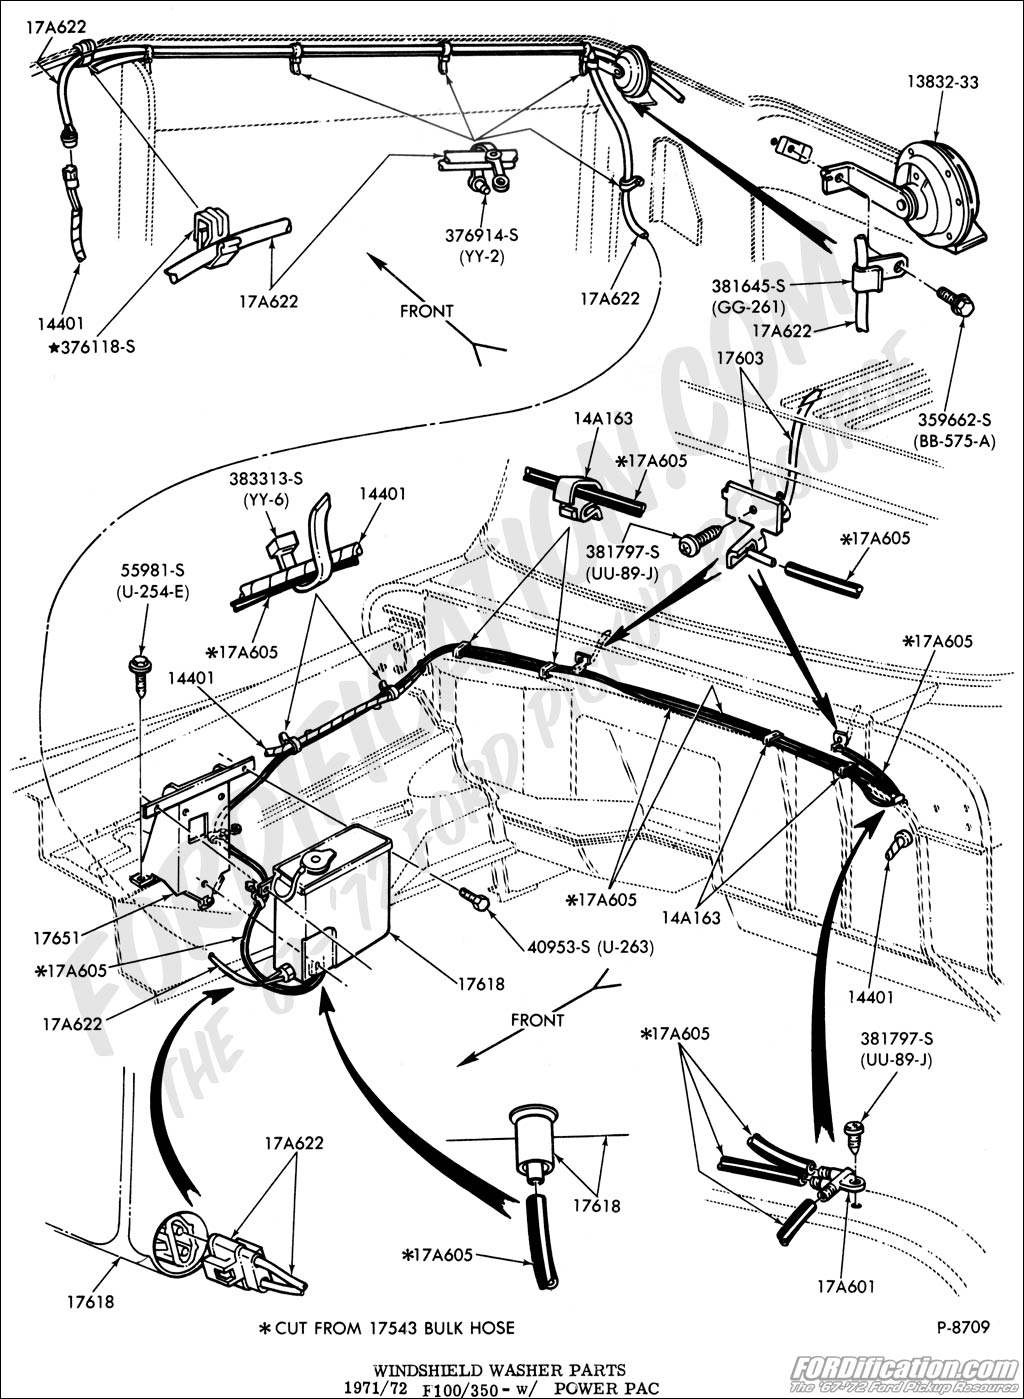 1966 Ford Econoline Engine Diagram Trusted Wiring F1 1950 Diagrams Instructions 1984 F 250